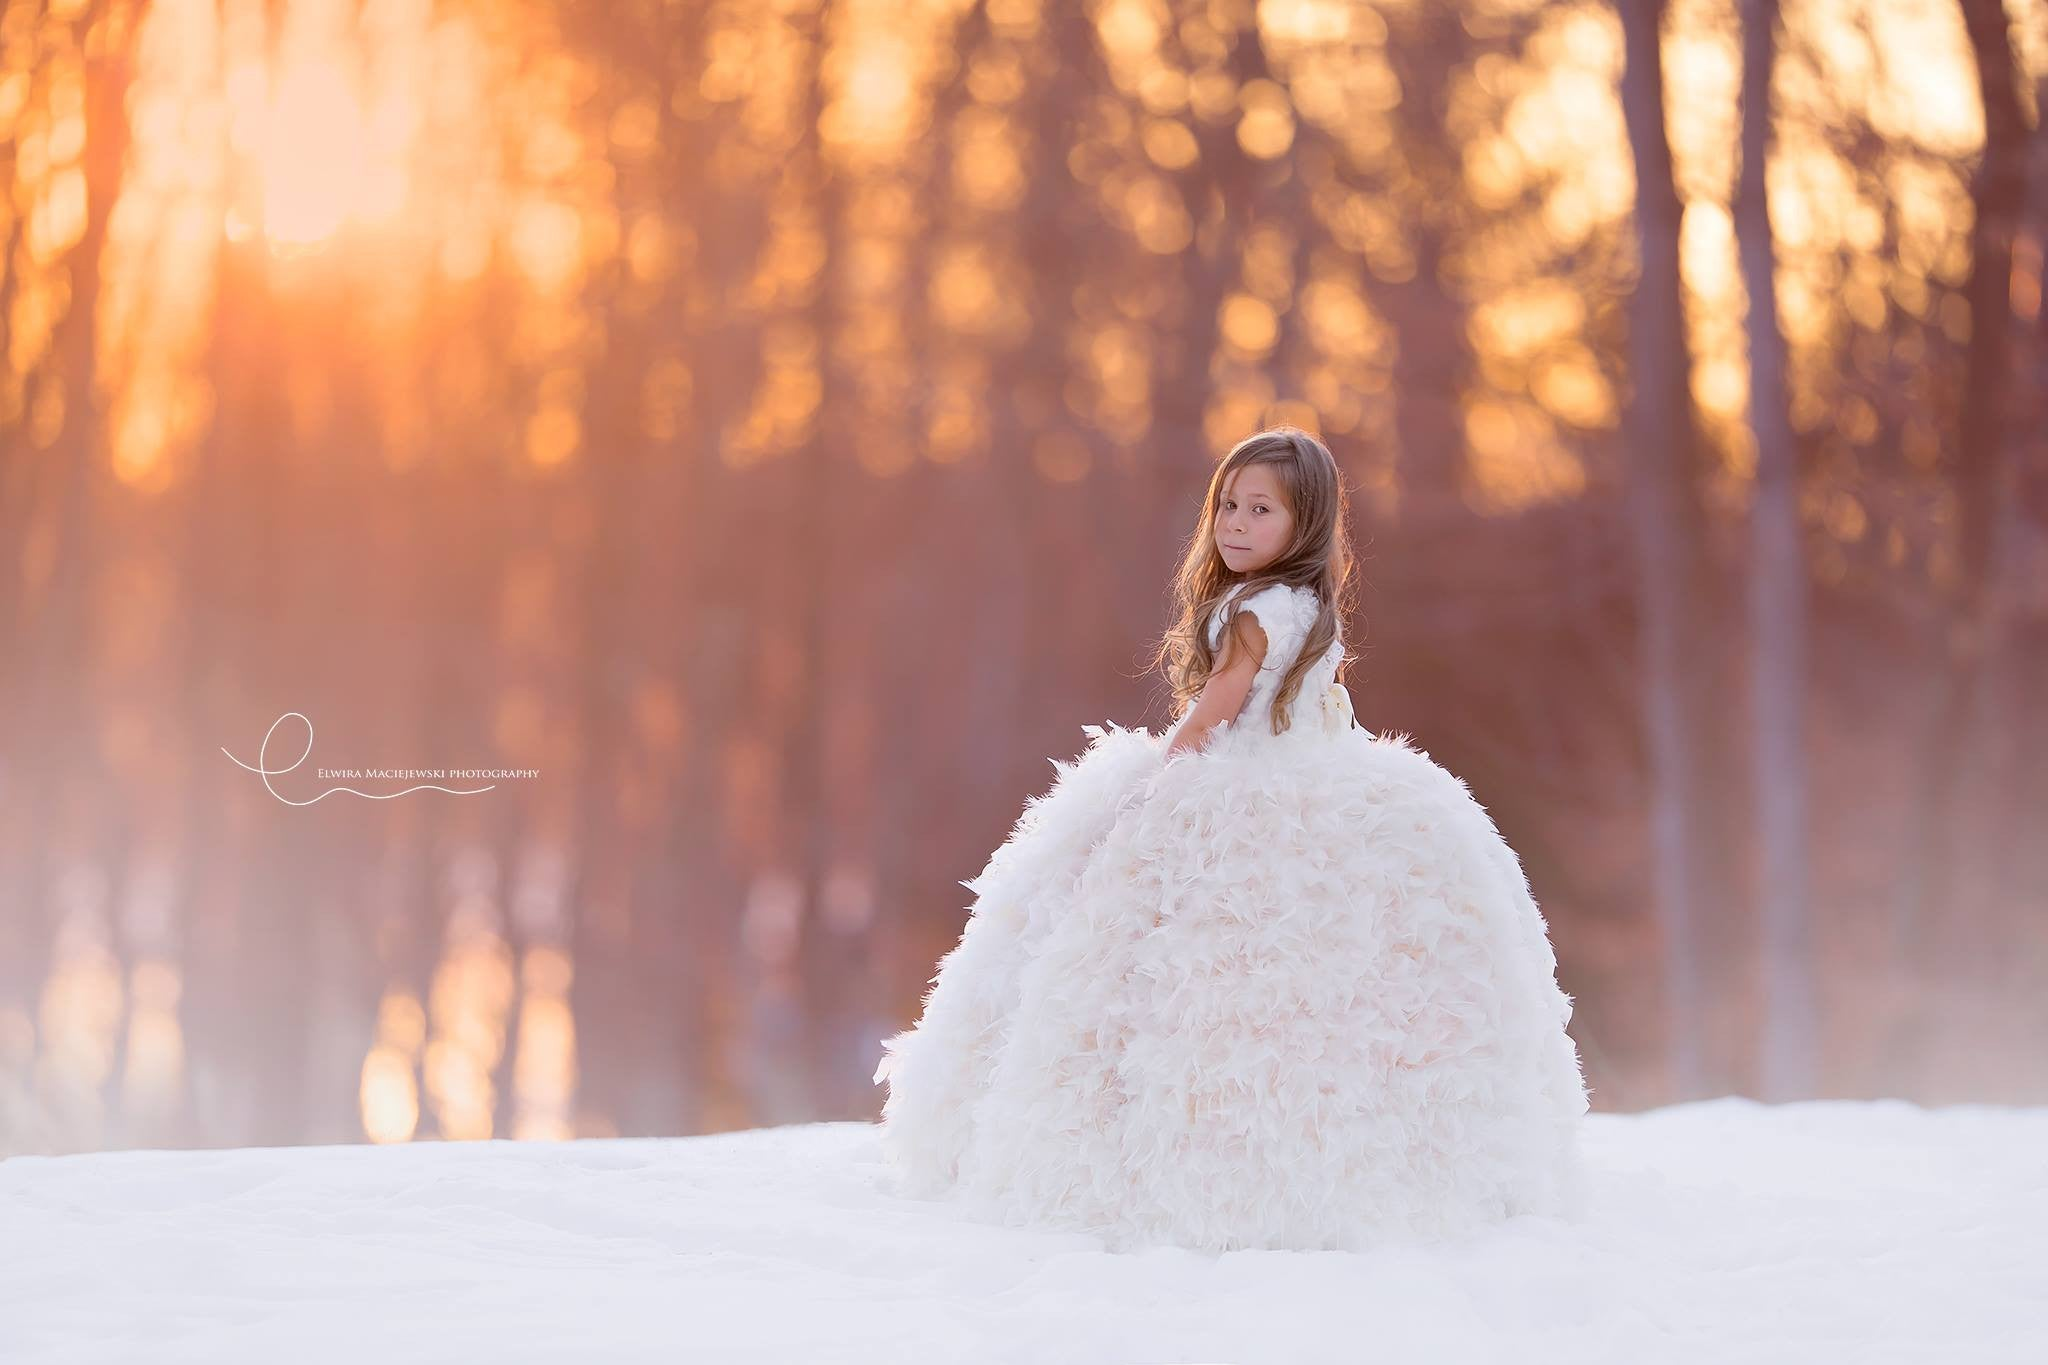 Angels And Snowflakes A Couture Flower Girl Dress Snow Flakes Formal Feather Gown